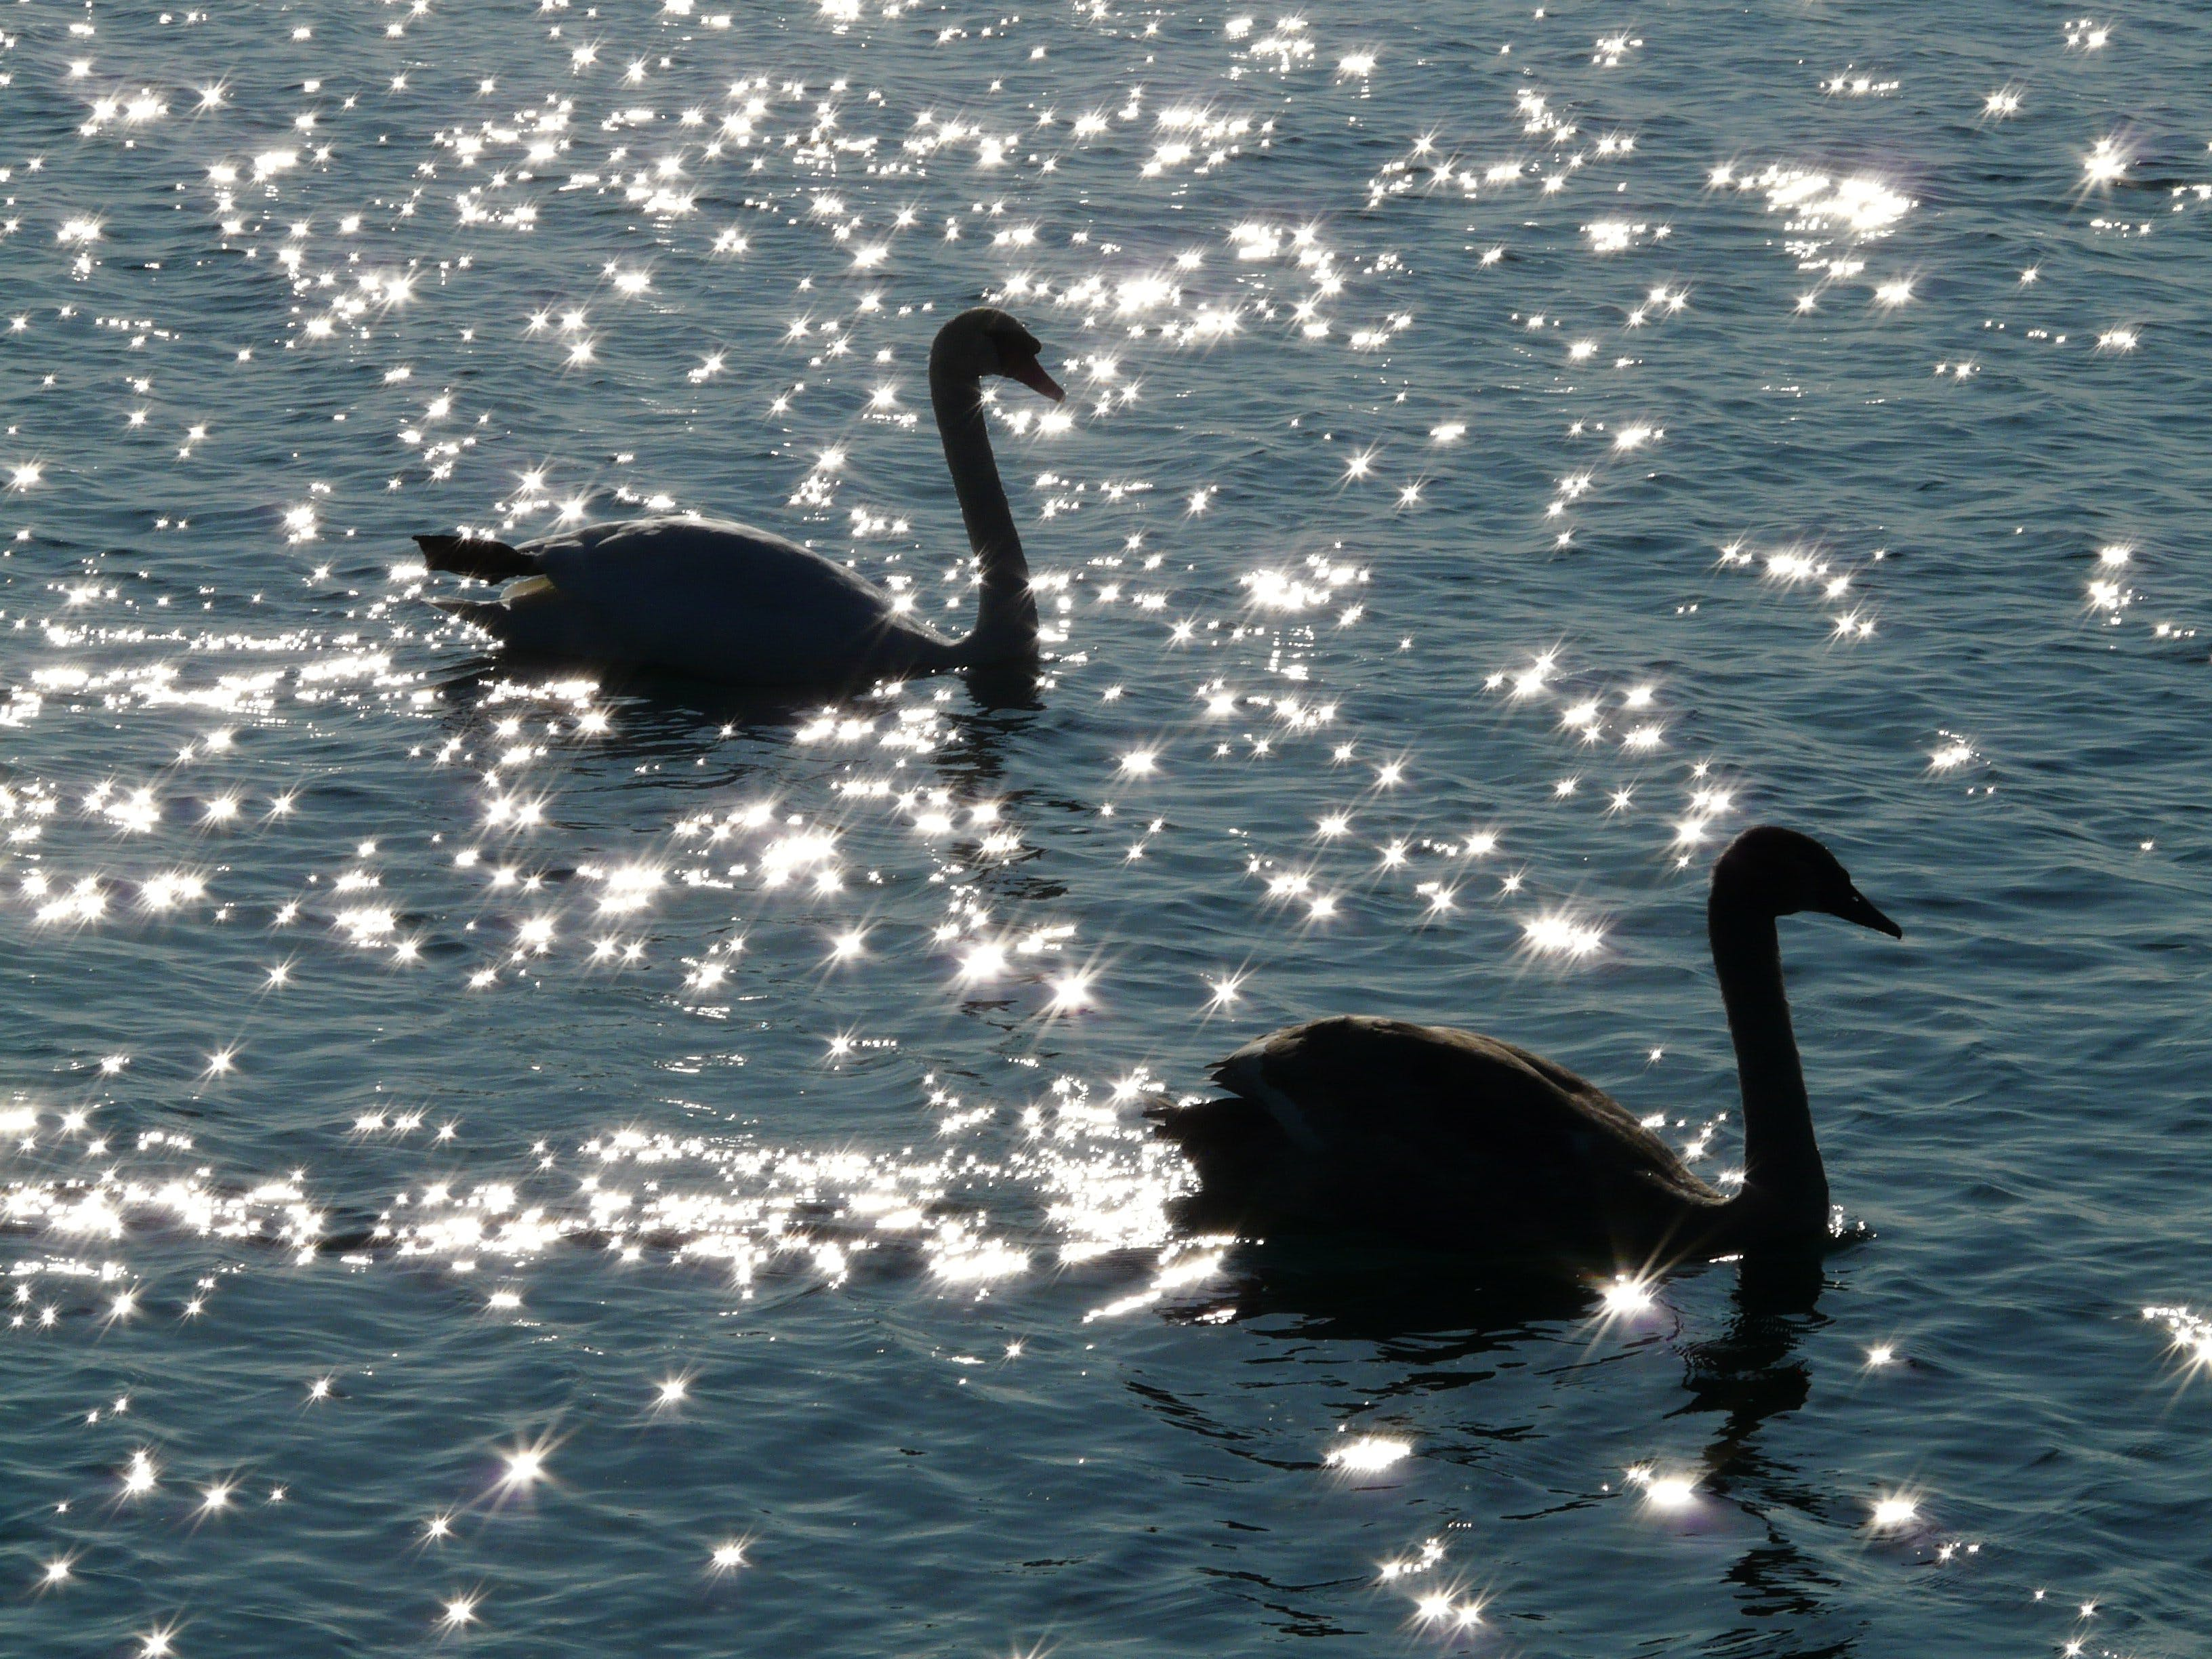 2 Swan on Body of Water